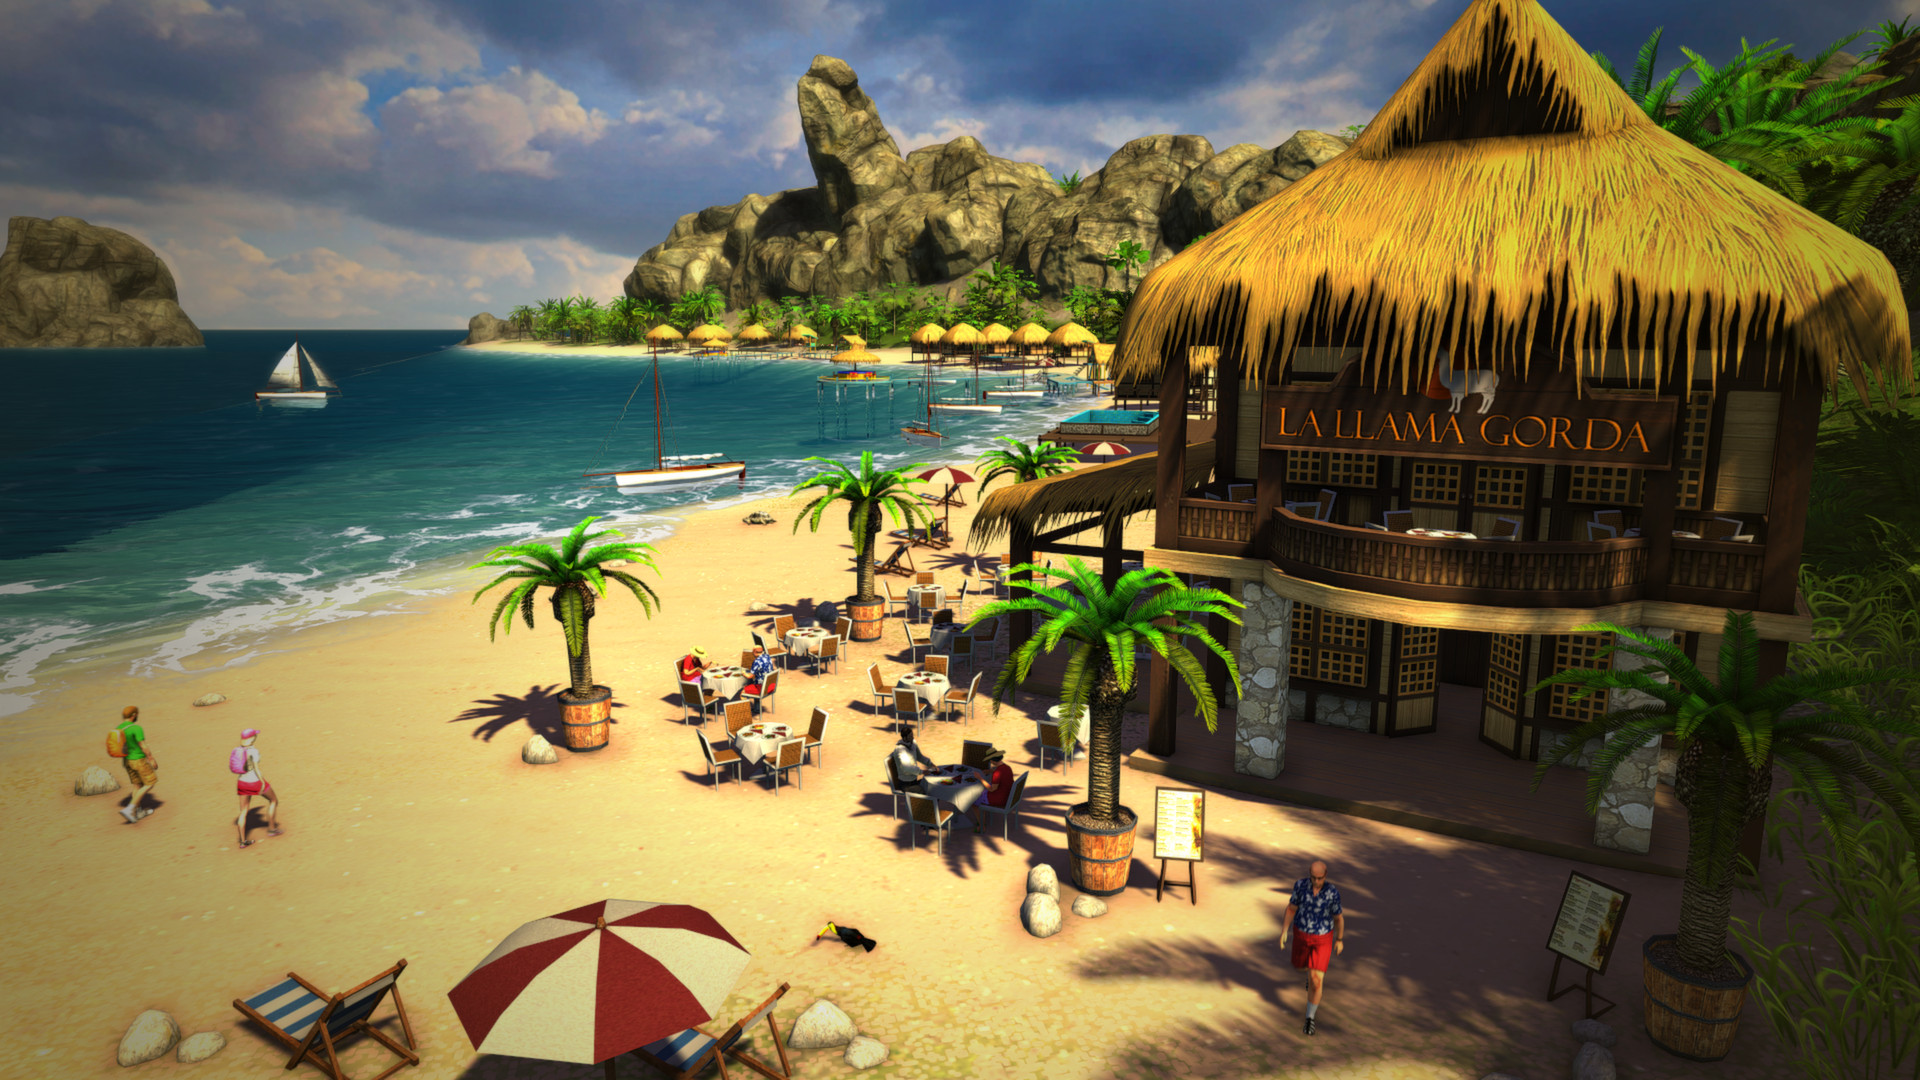 Buy tropico 5 steam special edition steam gift/ru cis and download.